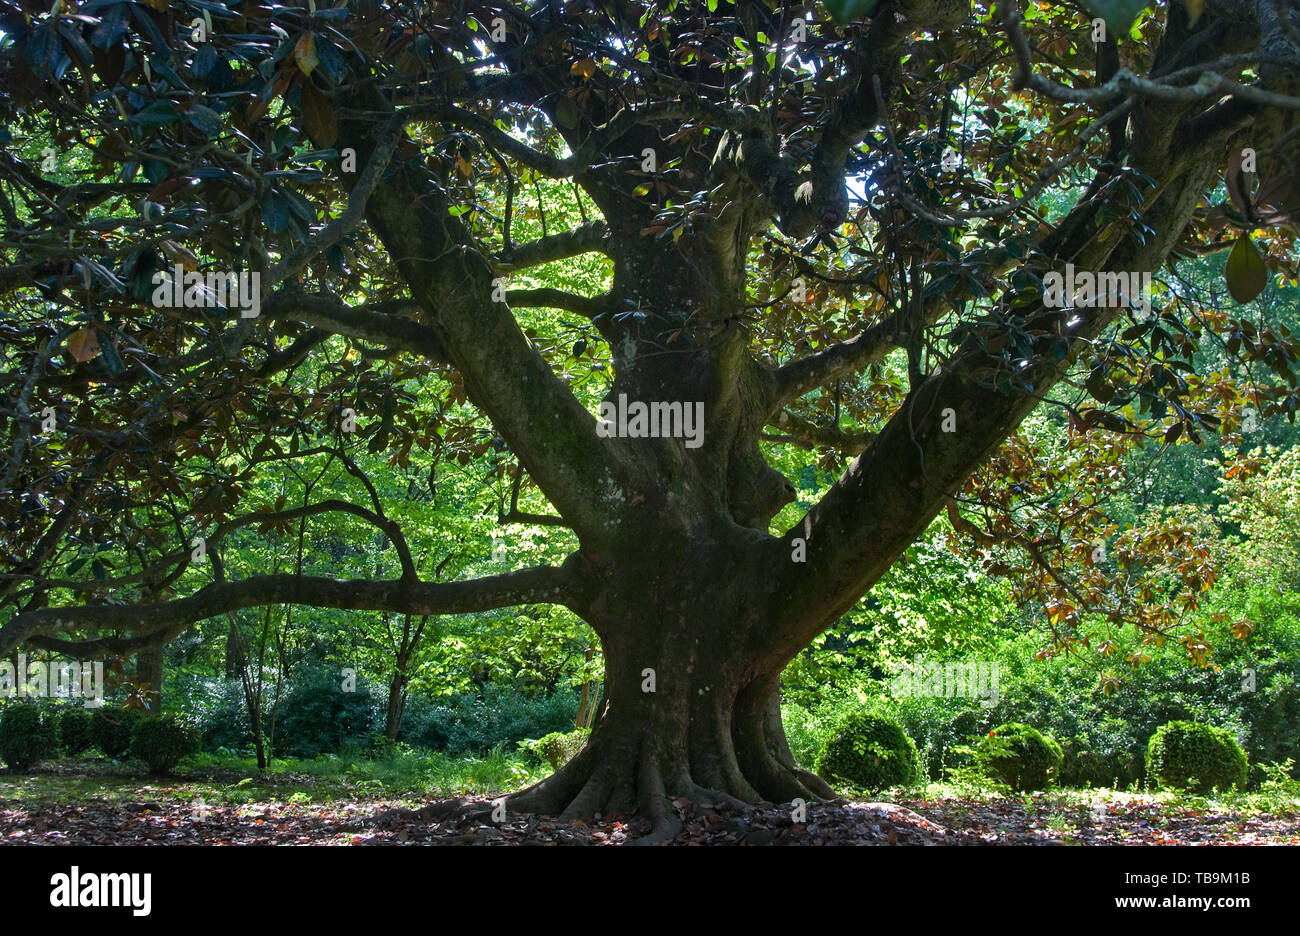 Southern Magnolia Tree High Resolution Stock Photography And Images Alamy